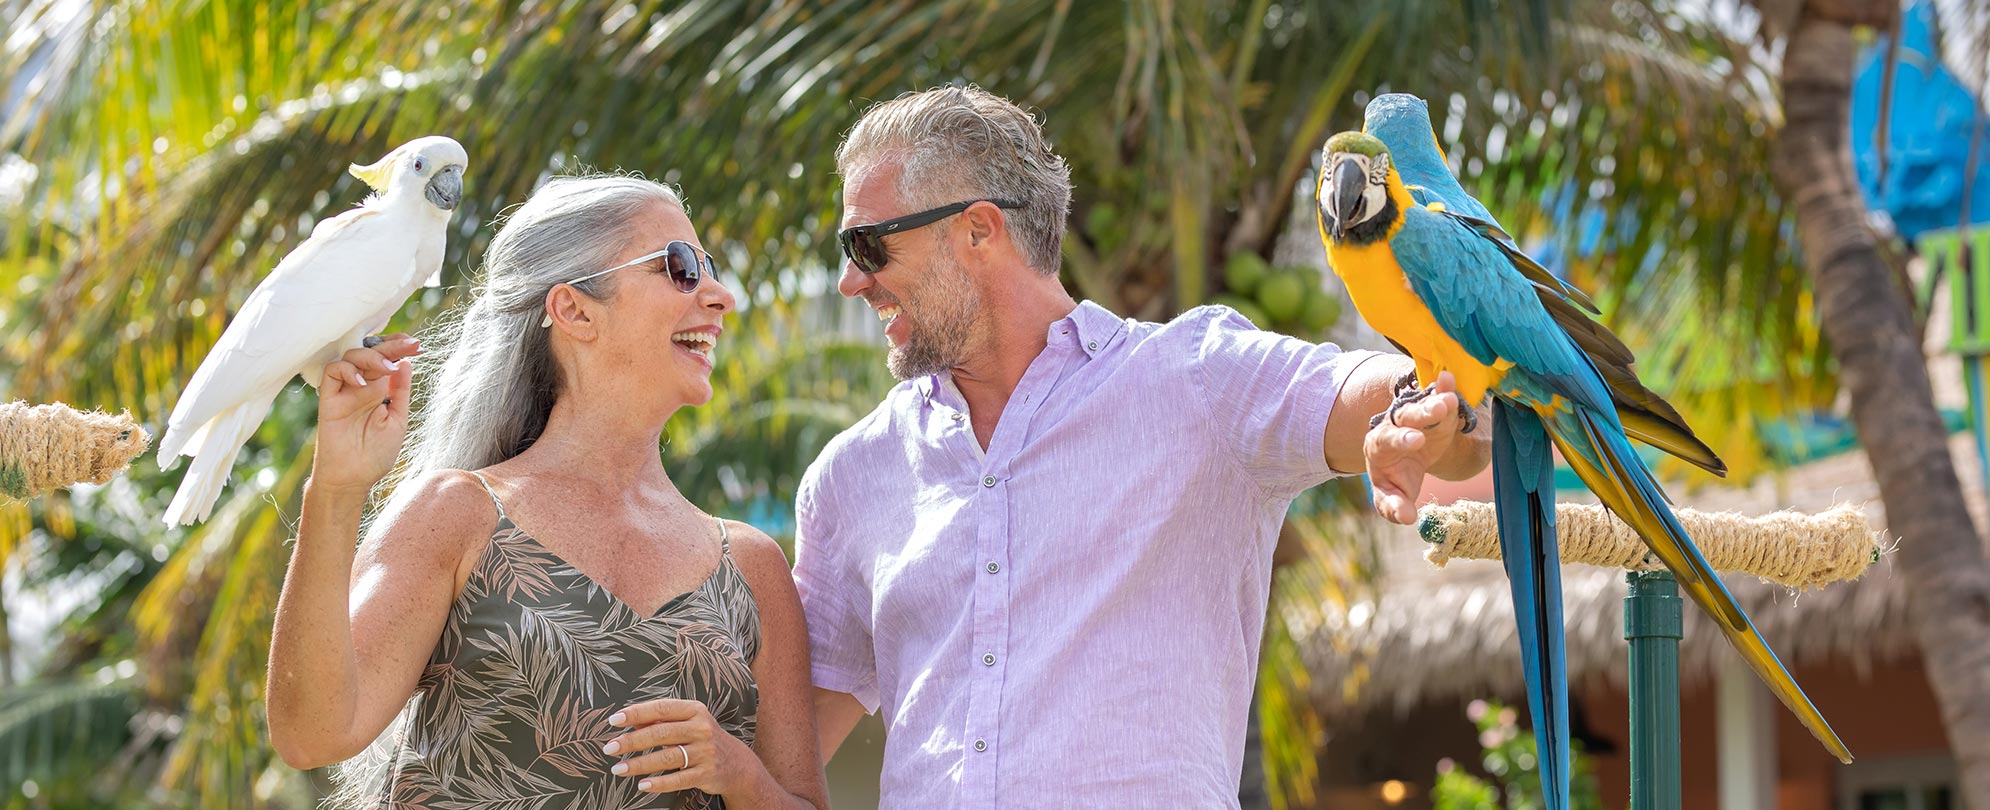 A man and woman hold tropical birds on their arms while enjoying owner exclusives from Margaritaville Vacation Club.